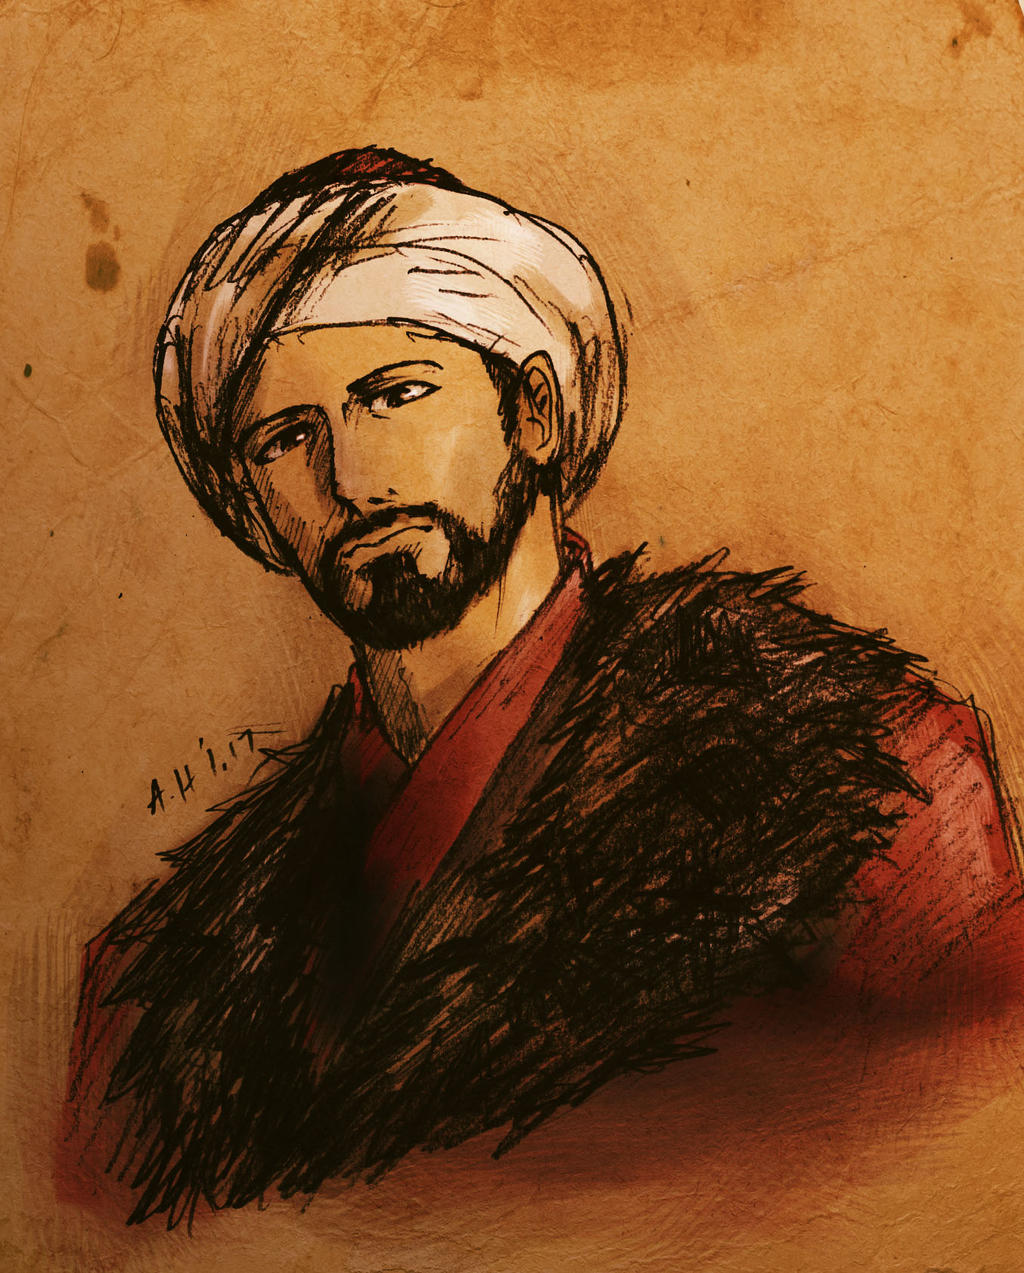 Sultan Muhammad Al-Fateh by Doqida on DeviantArt